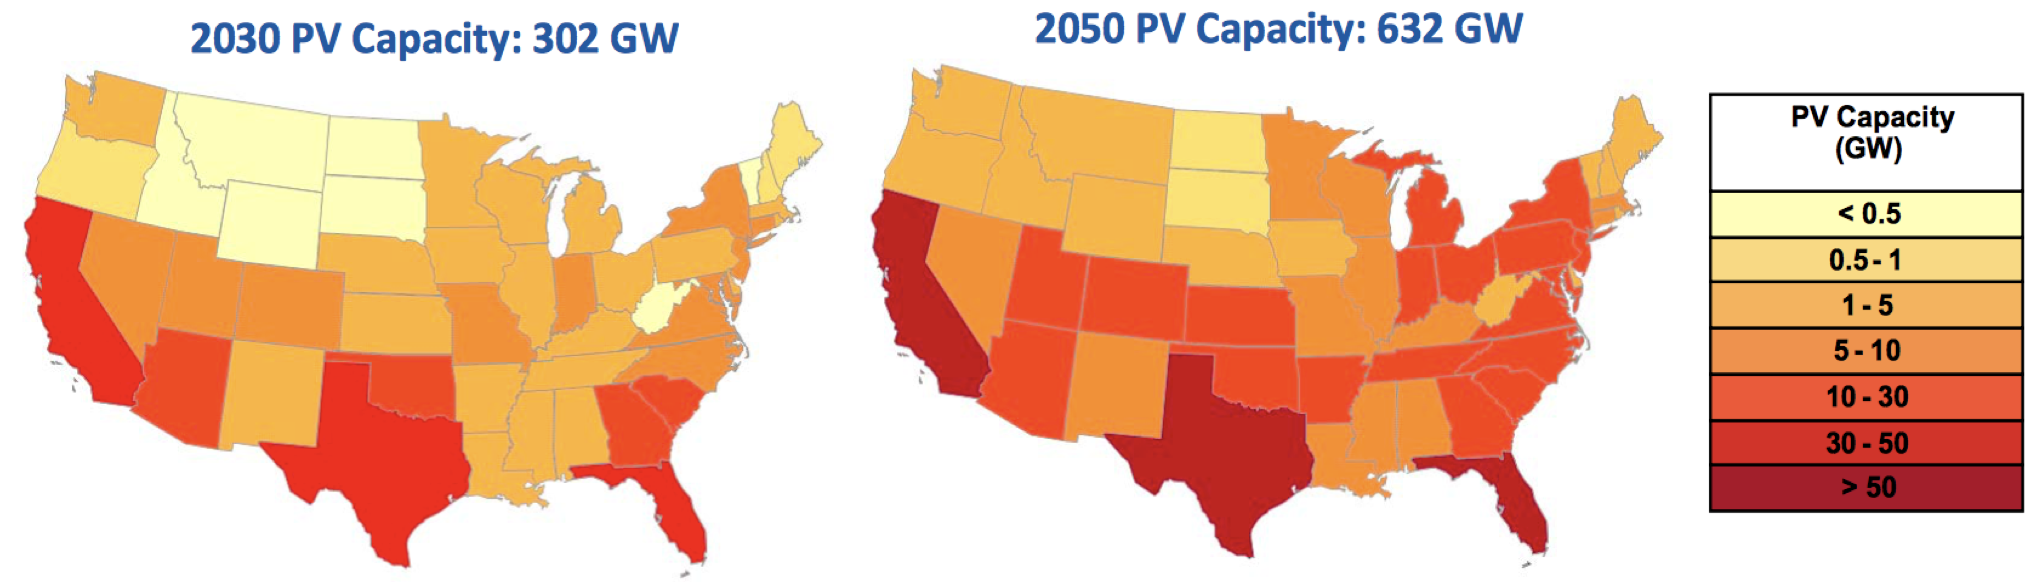 two maps of the United States showing the PV capacity in 2030 for a 302 GW system with varying shades of color and a 2050 PV capacity of 632 GW with darker shades of of color.